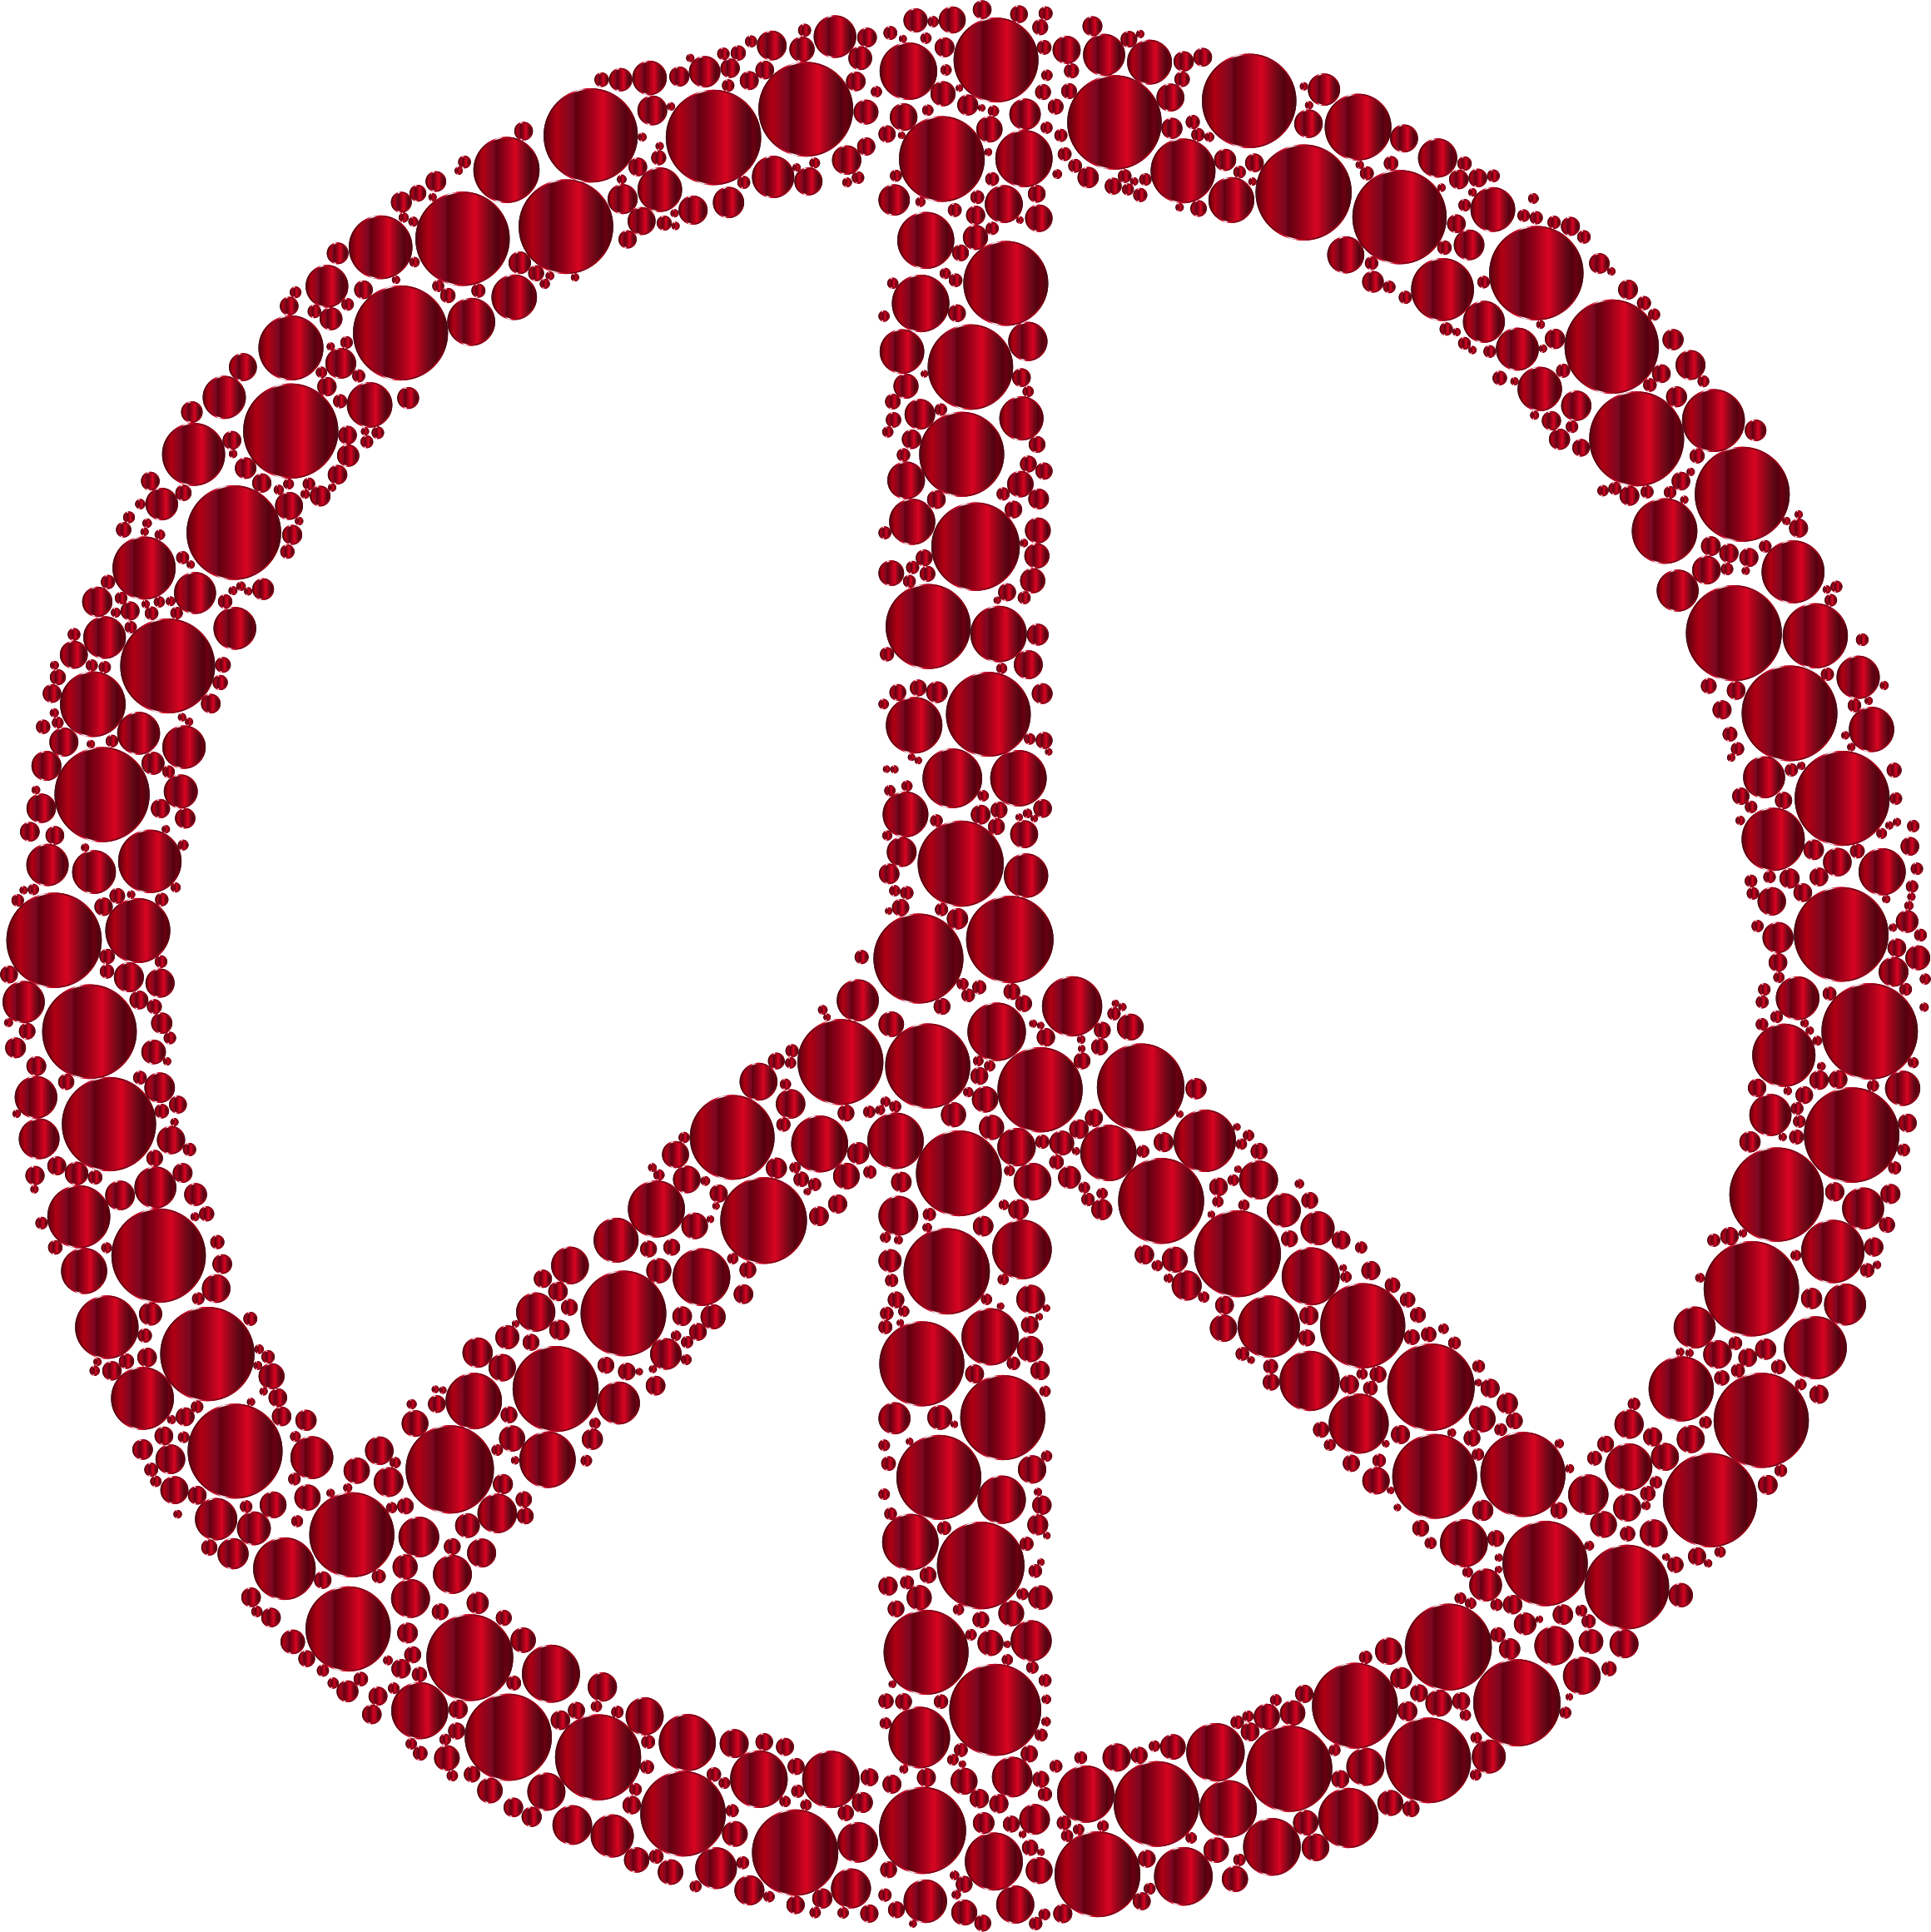 Colorful Circles Peace Sign 25 Without Background by GDJ